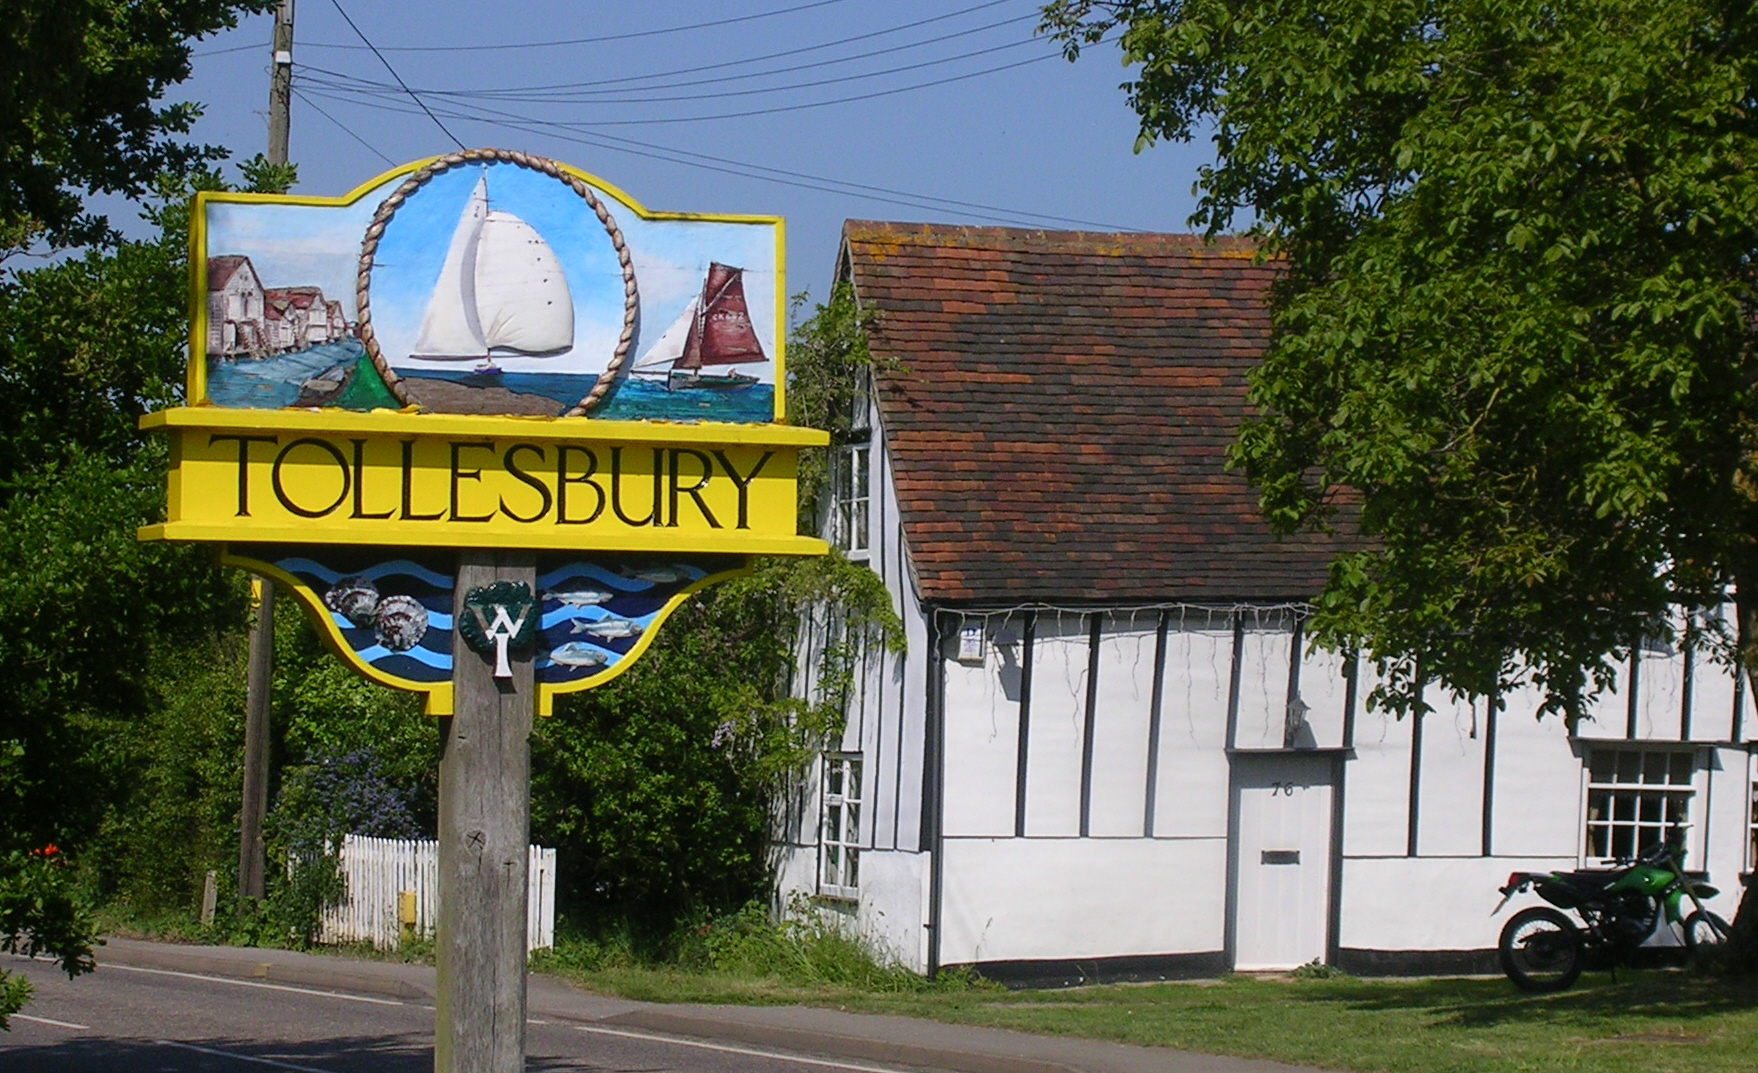 tollesbury essex uk